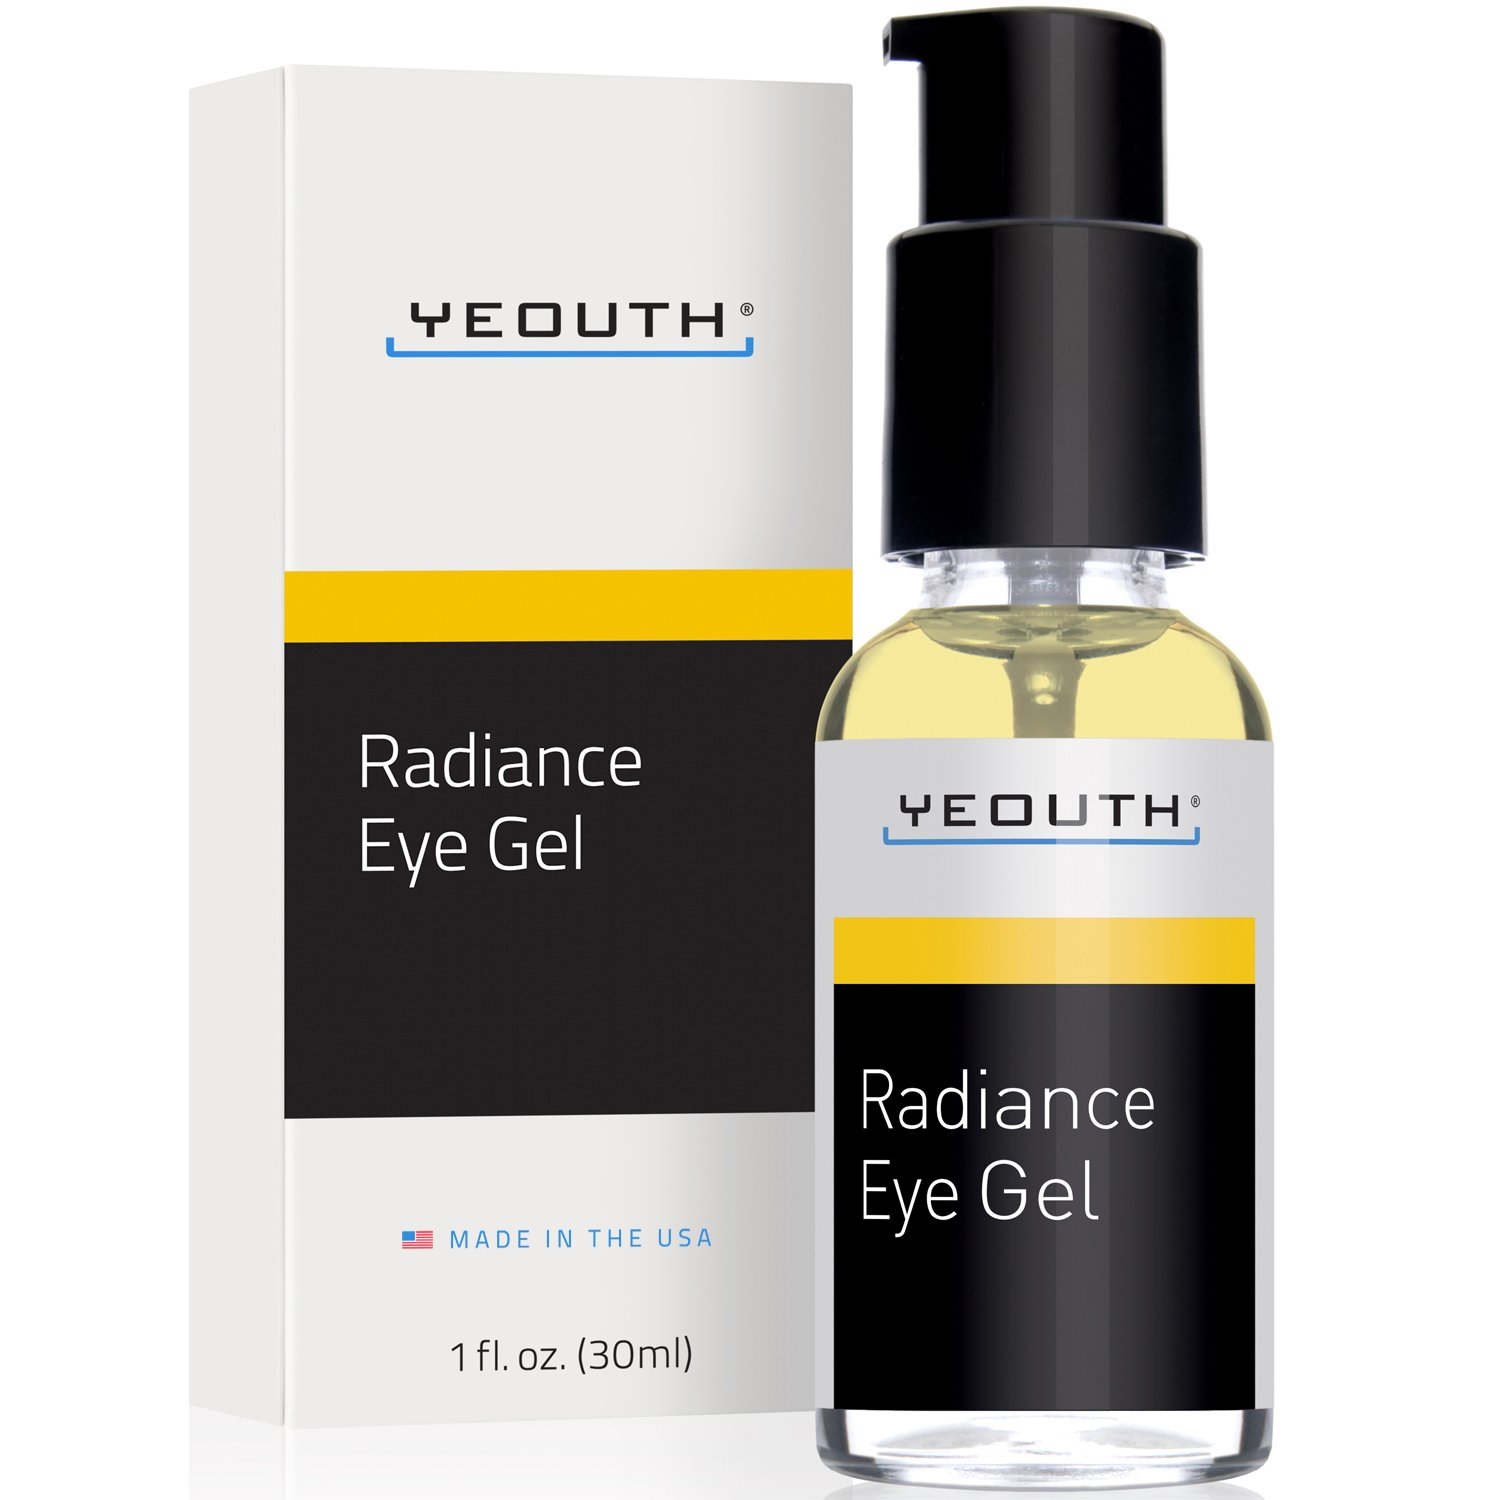 YEOUTH Eye Gel with Hyaluronic Acid - Dark Circles Under Eyes, Eye Bags, Anti-Wrinkle, Crows Feet, Redness on Face - Best Eye Cream for Anti Ageing with 100% Money Back Guarantee, Large Size 30ML